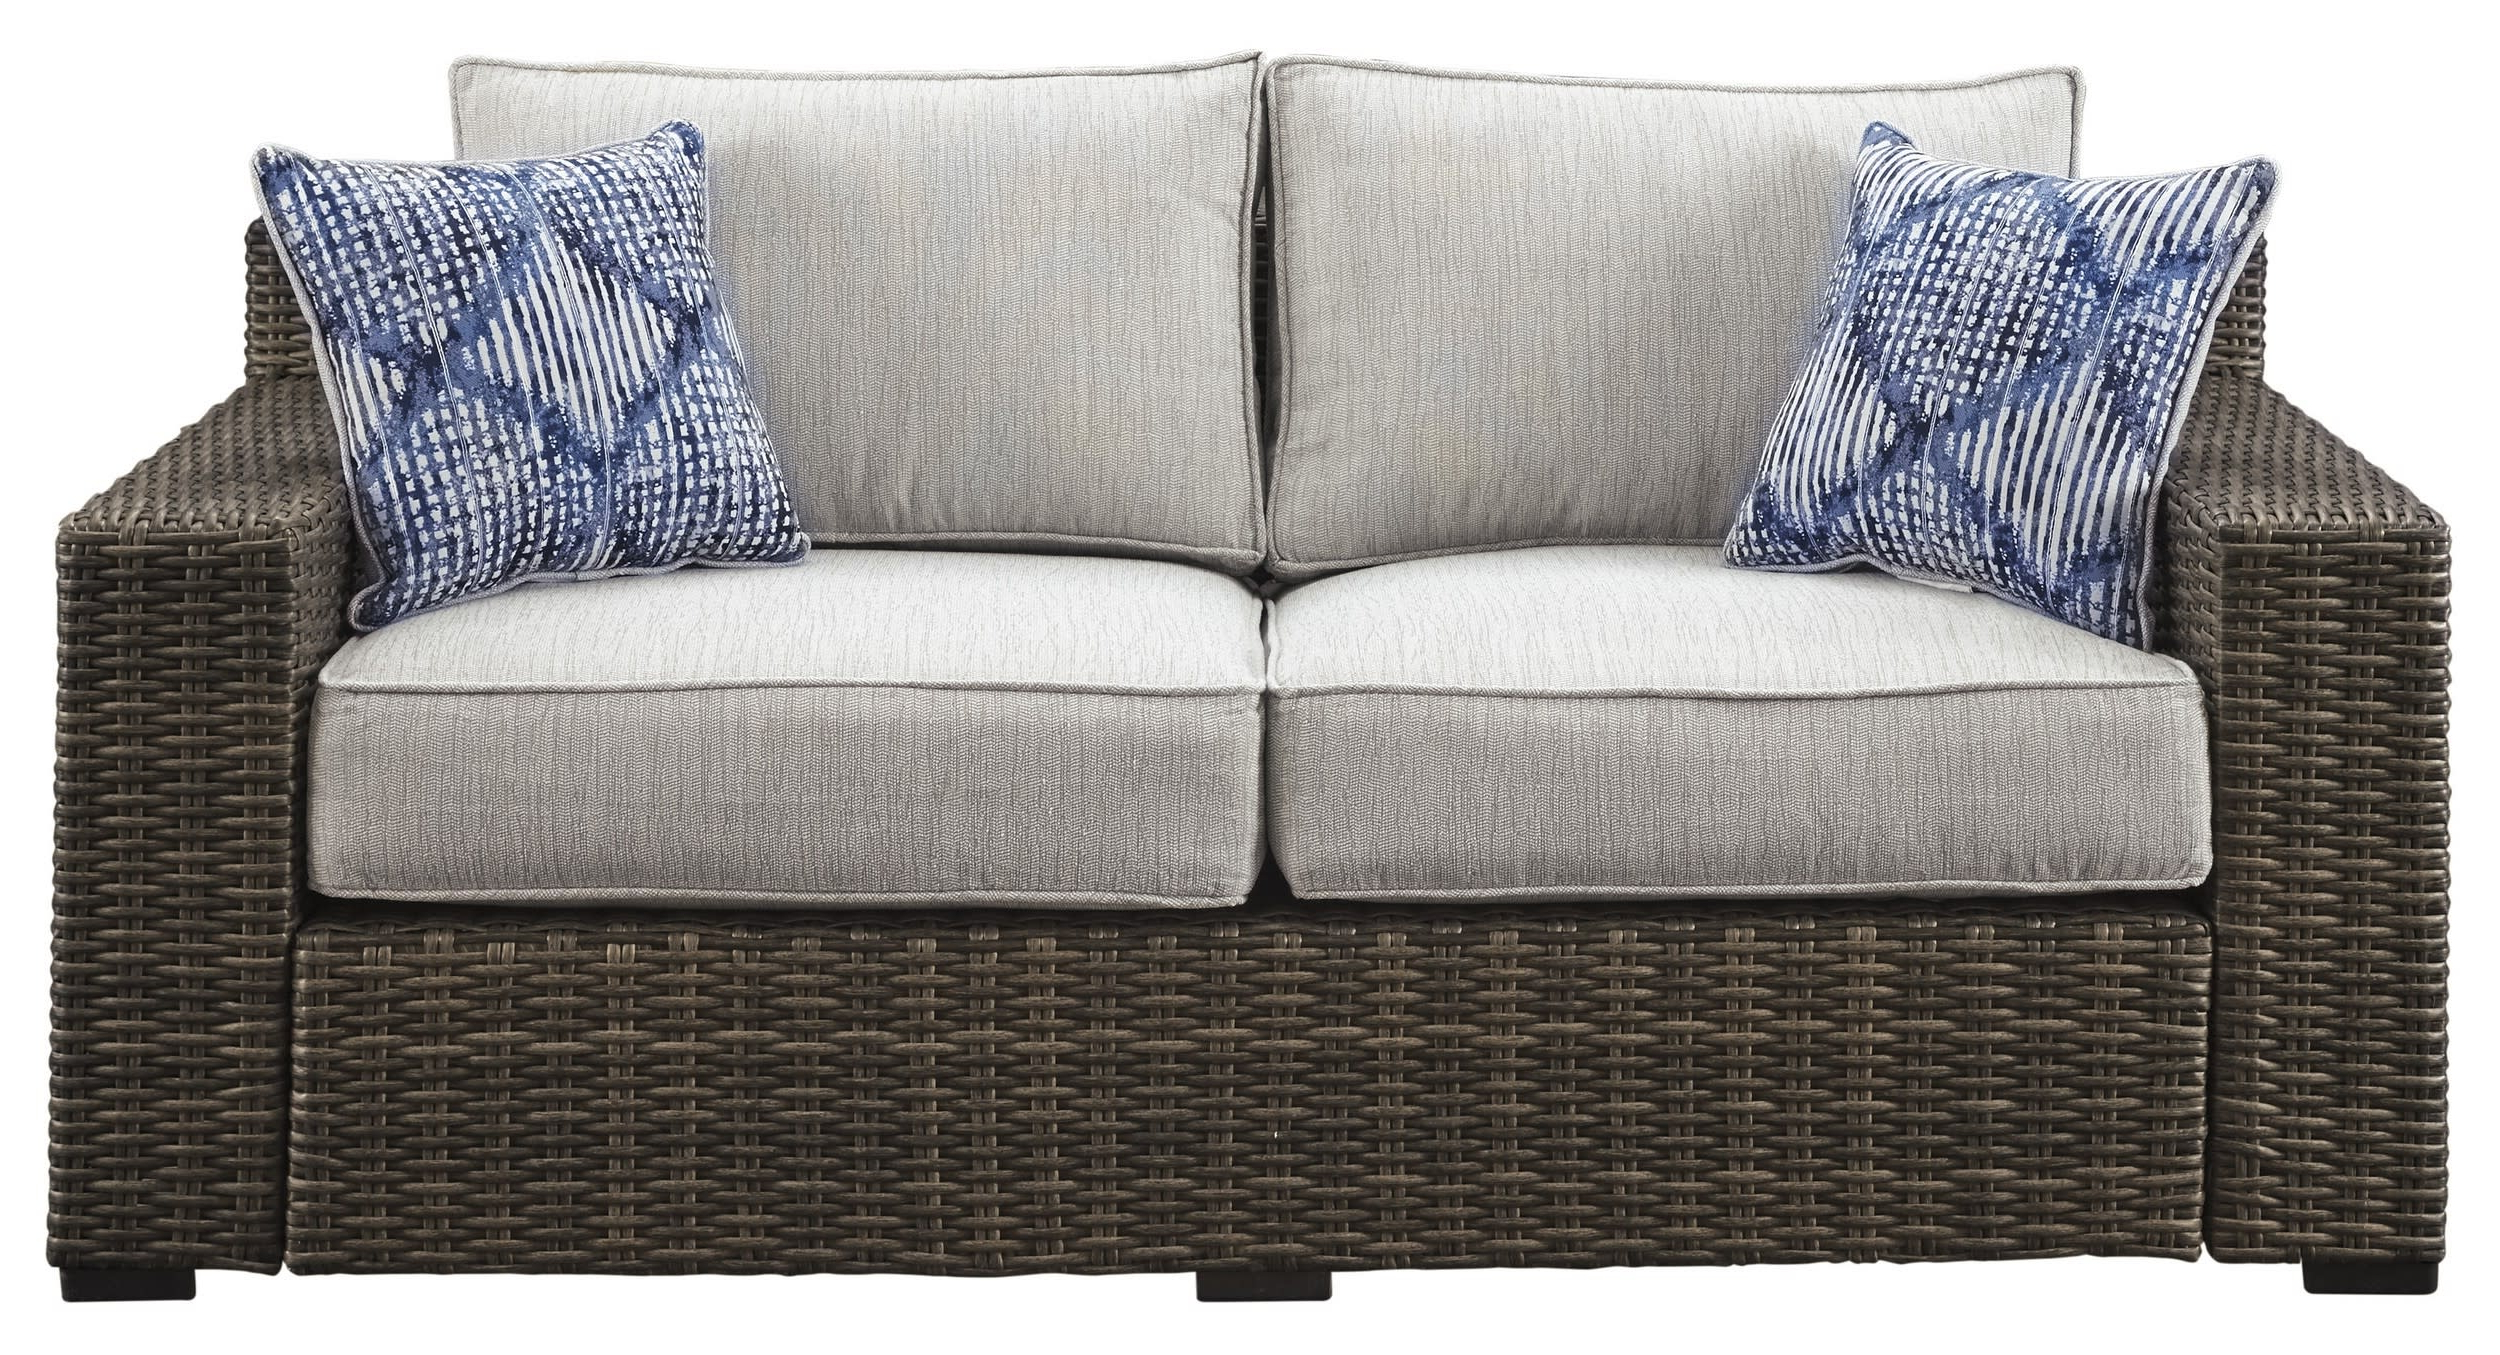 Most Recent Oceanside Outdoor Wicker Loveseats With Cushions Intended For Signature Designashley P782 (View 13 of 25)